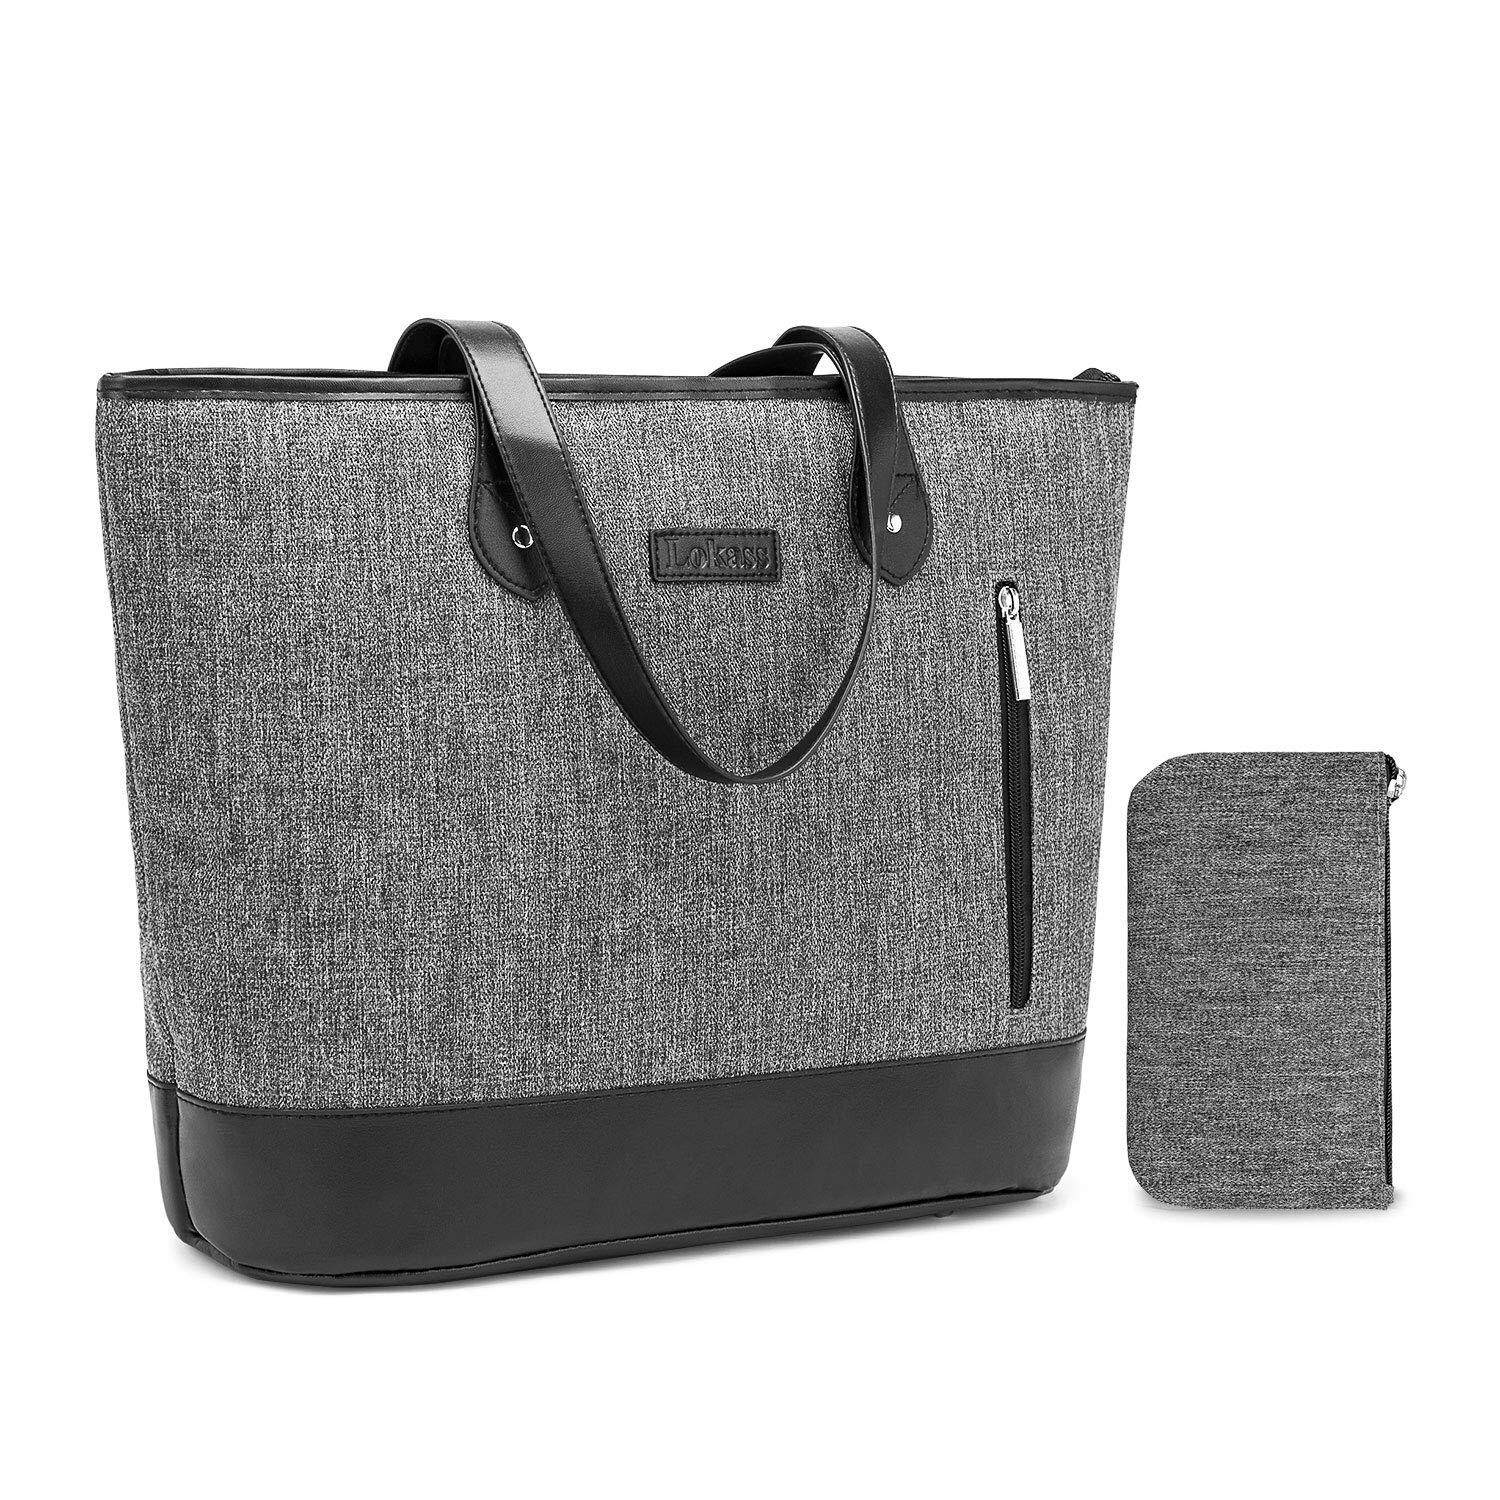 4ada9c53290 Laptop Tote Bag DTBG 15.6 Inches Women Shoulder Bag Nylon Briefcase Casual  Handbag Lightweight Laptop Case for Work Business Shopping Travel(Grey)